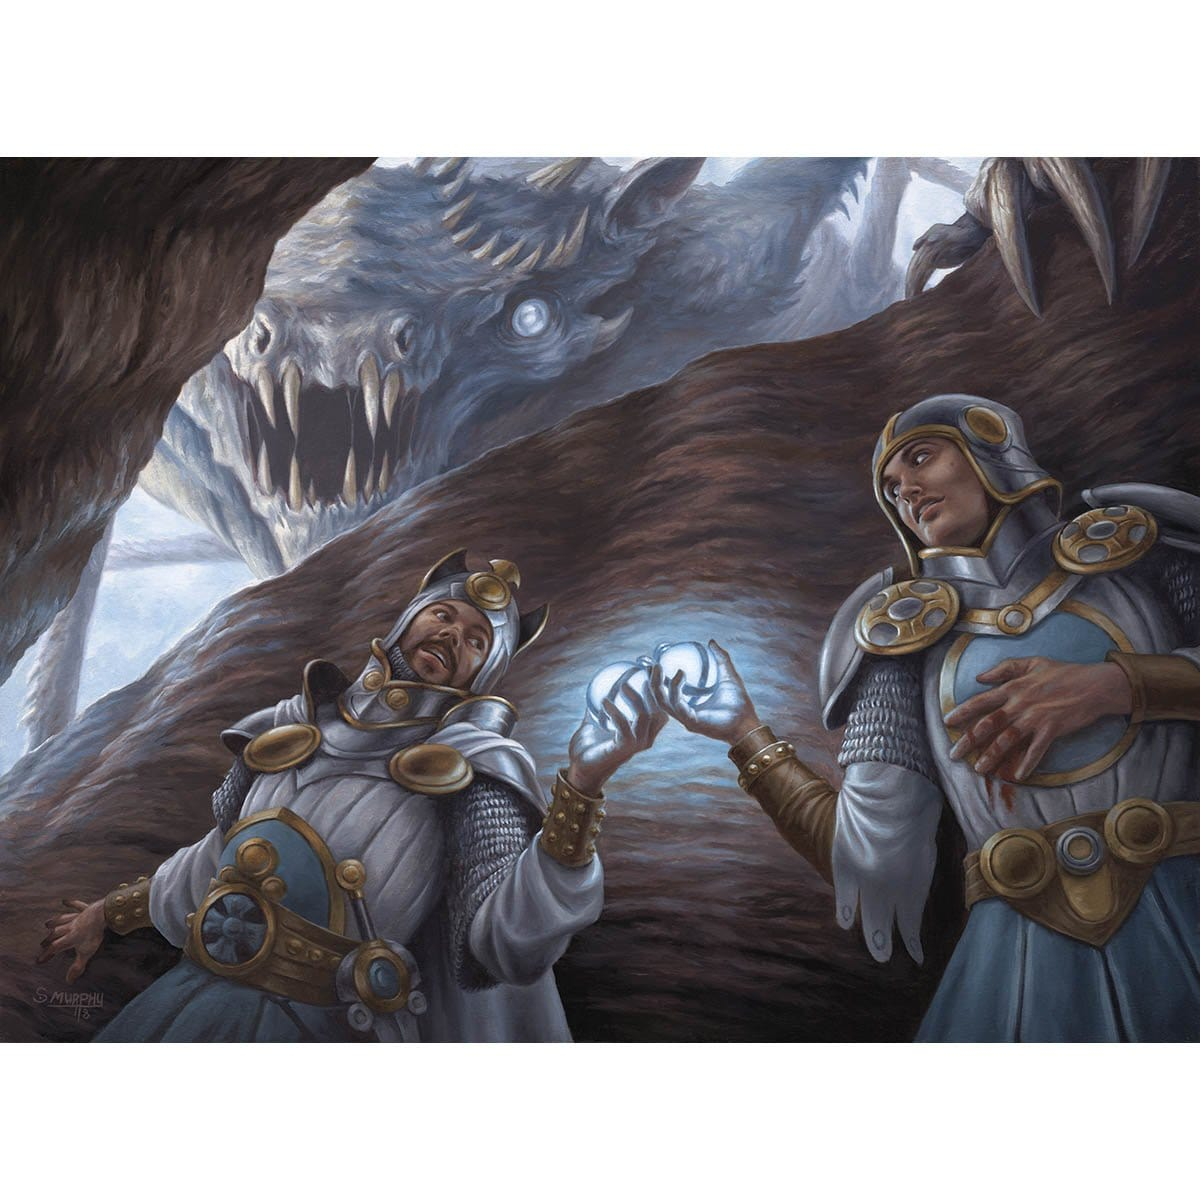 Fortifying Provisions Print - Print - Original Magic Art - Accessories for Magic the Gathering and other card games